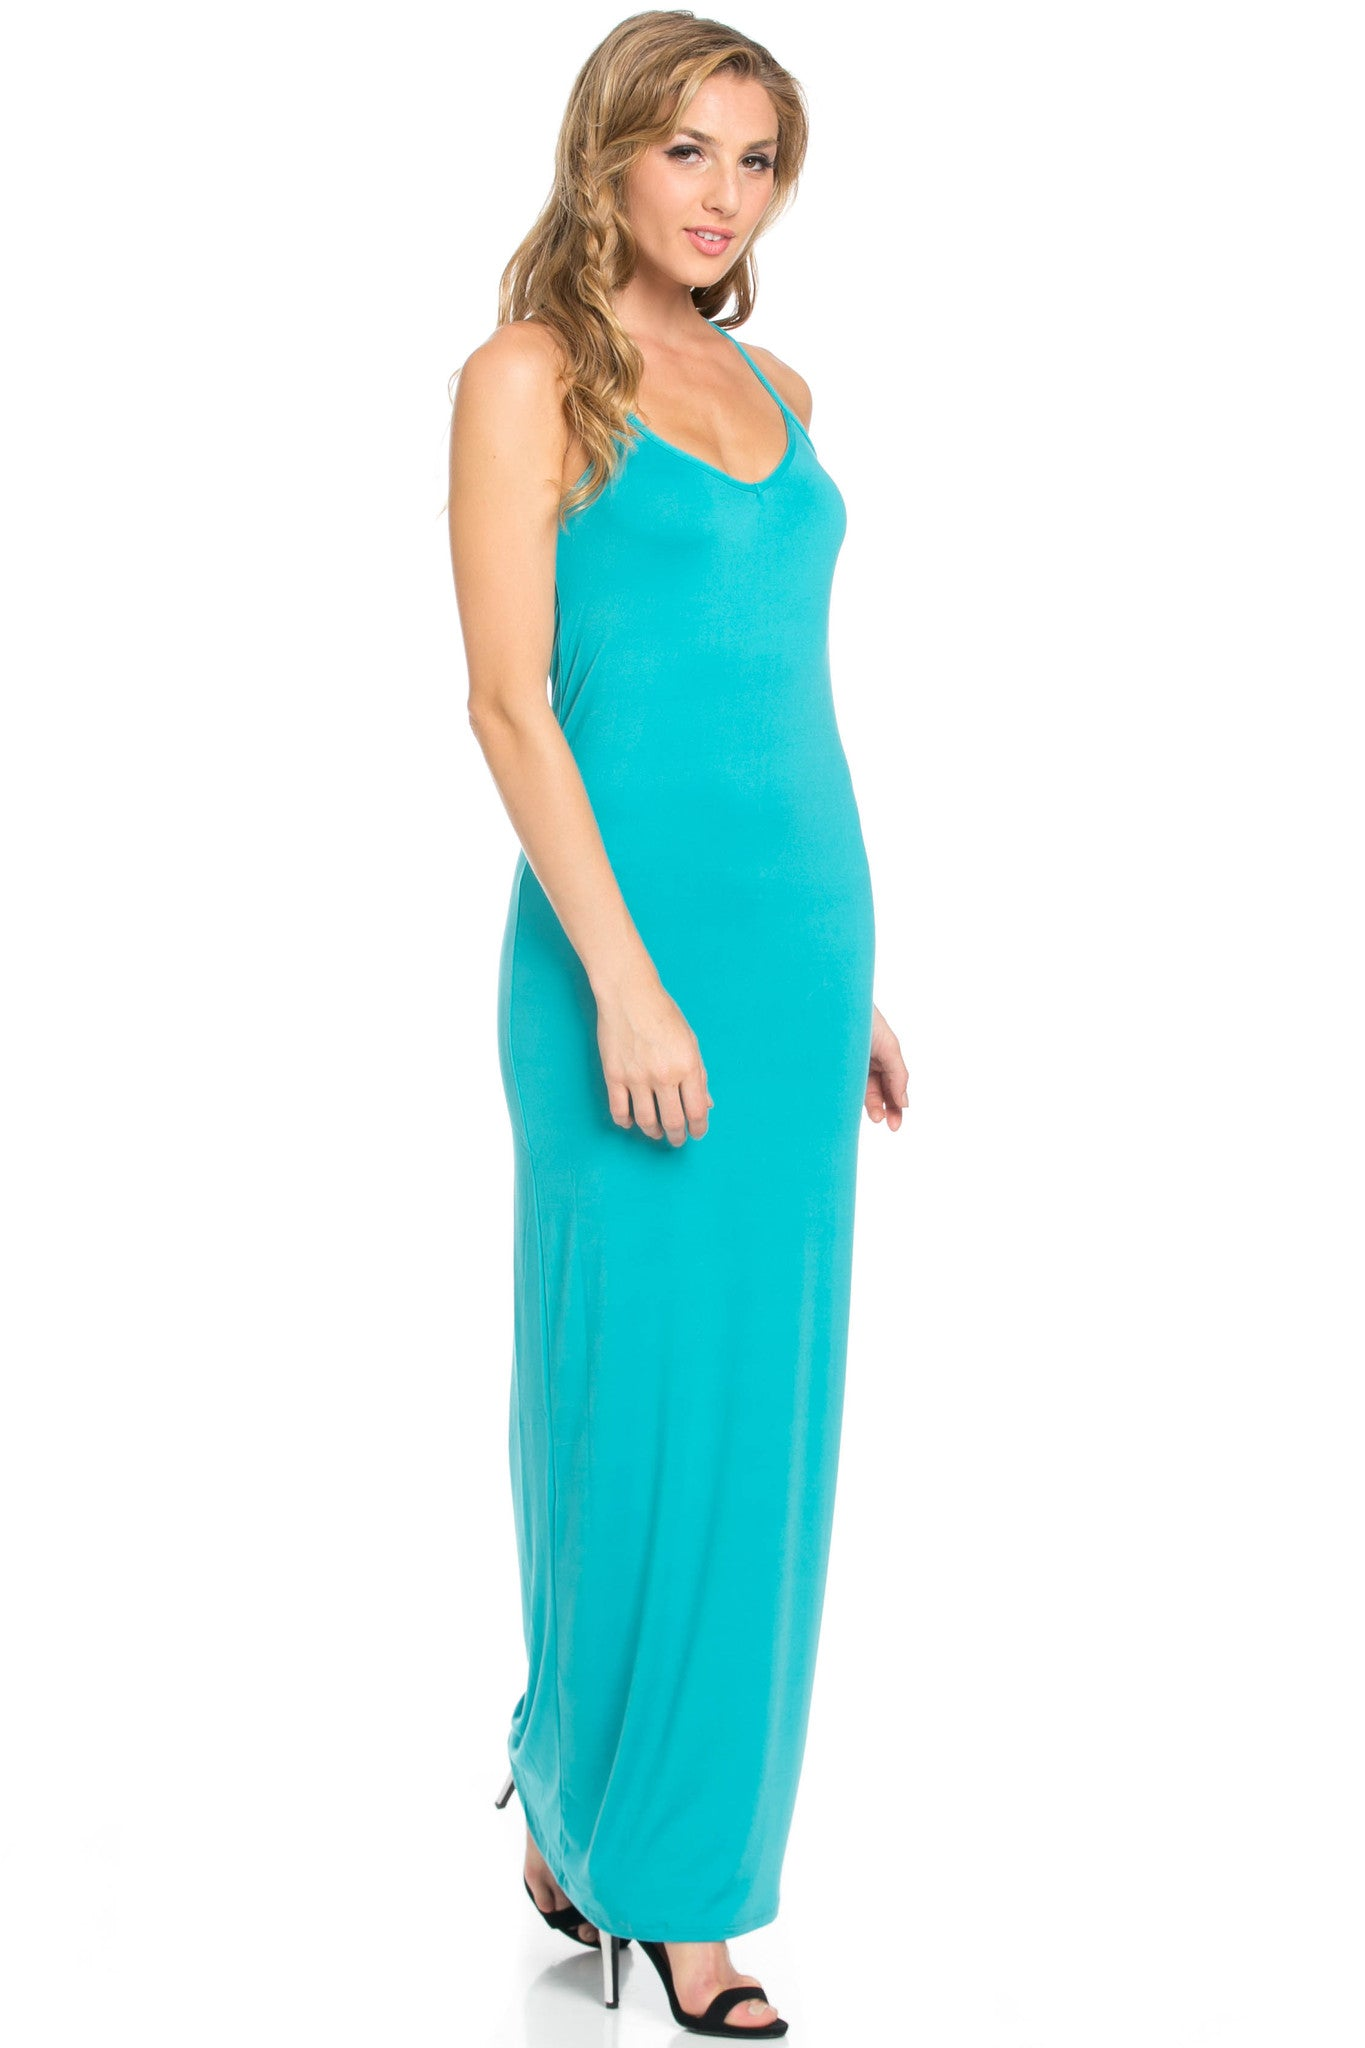 Micro Suede Jade Maxi Dress - Dresses - My Yuccie - 1